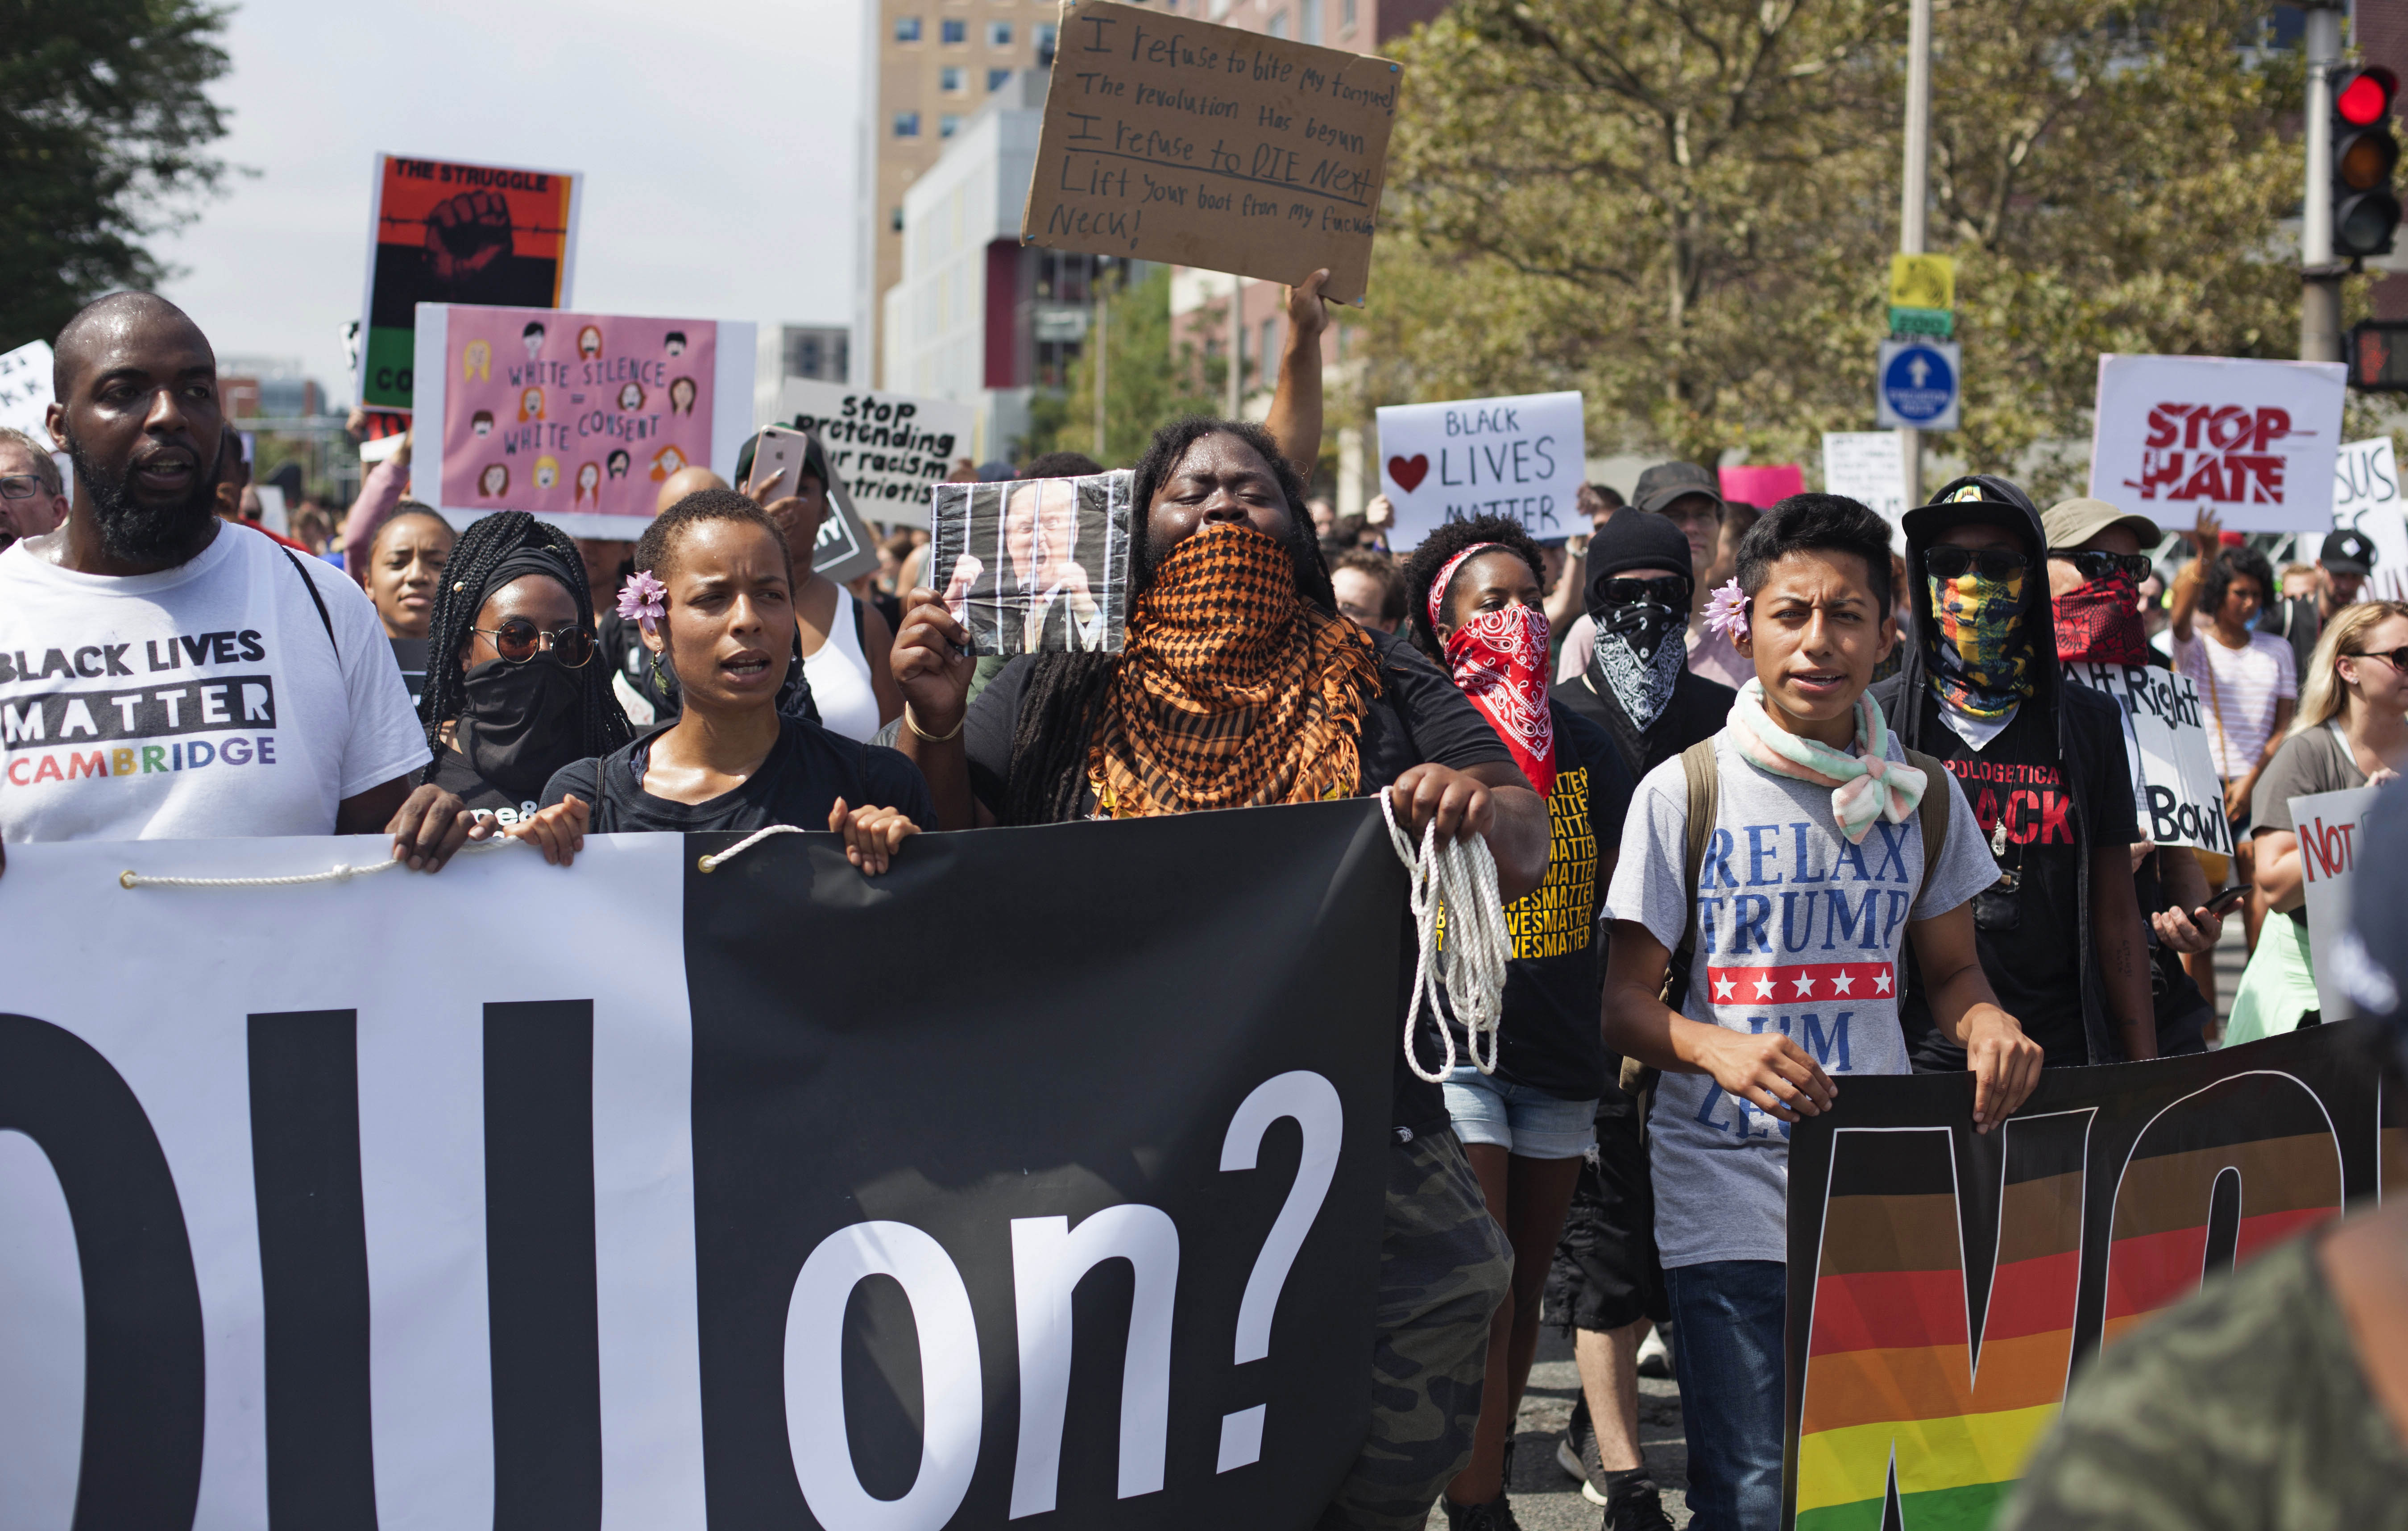 Counter protesters march down Tremont Street towards the Boston Common, where the Free Speech Rally was being held. (Shay Horse/GroundTruth)